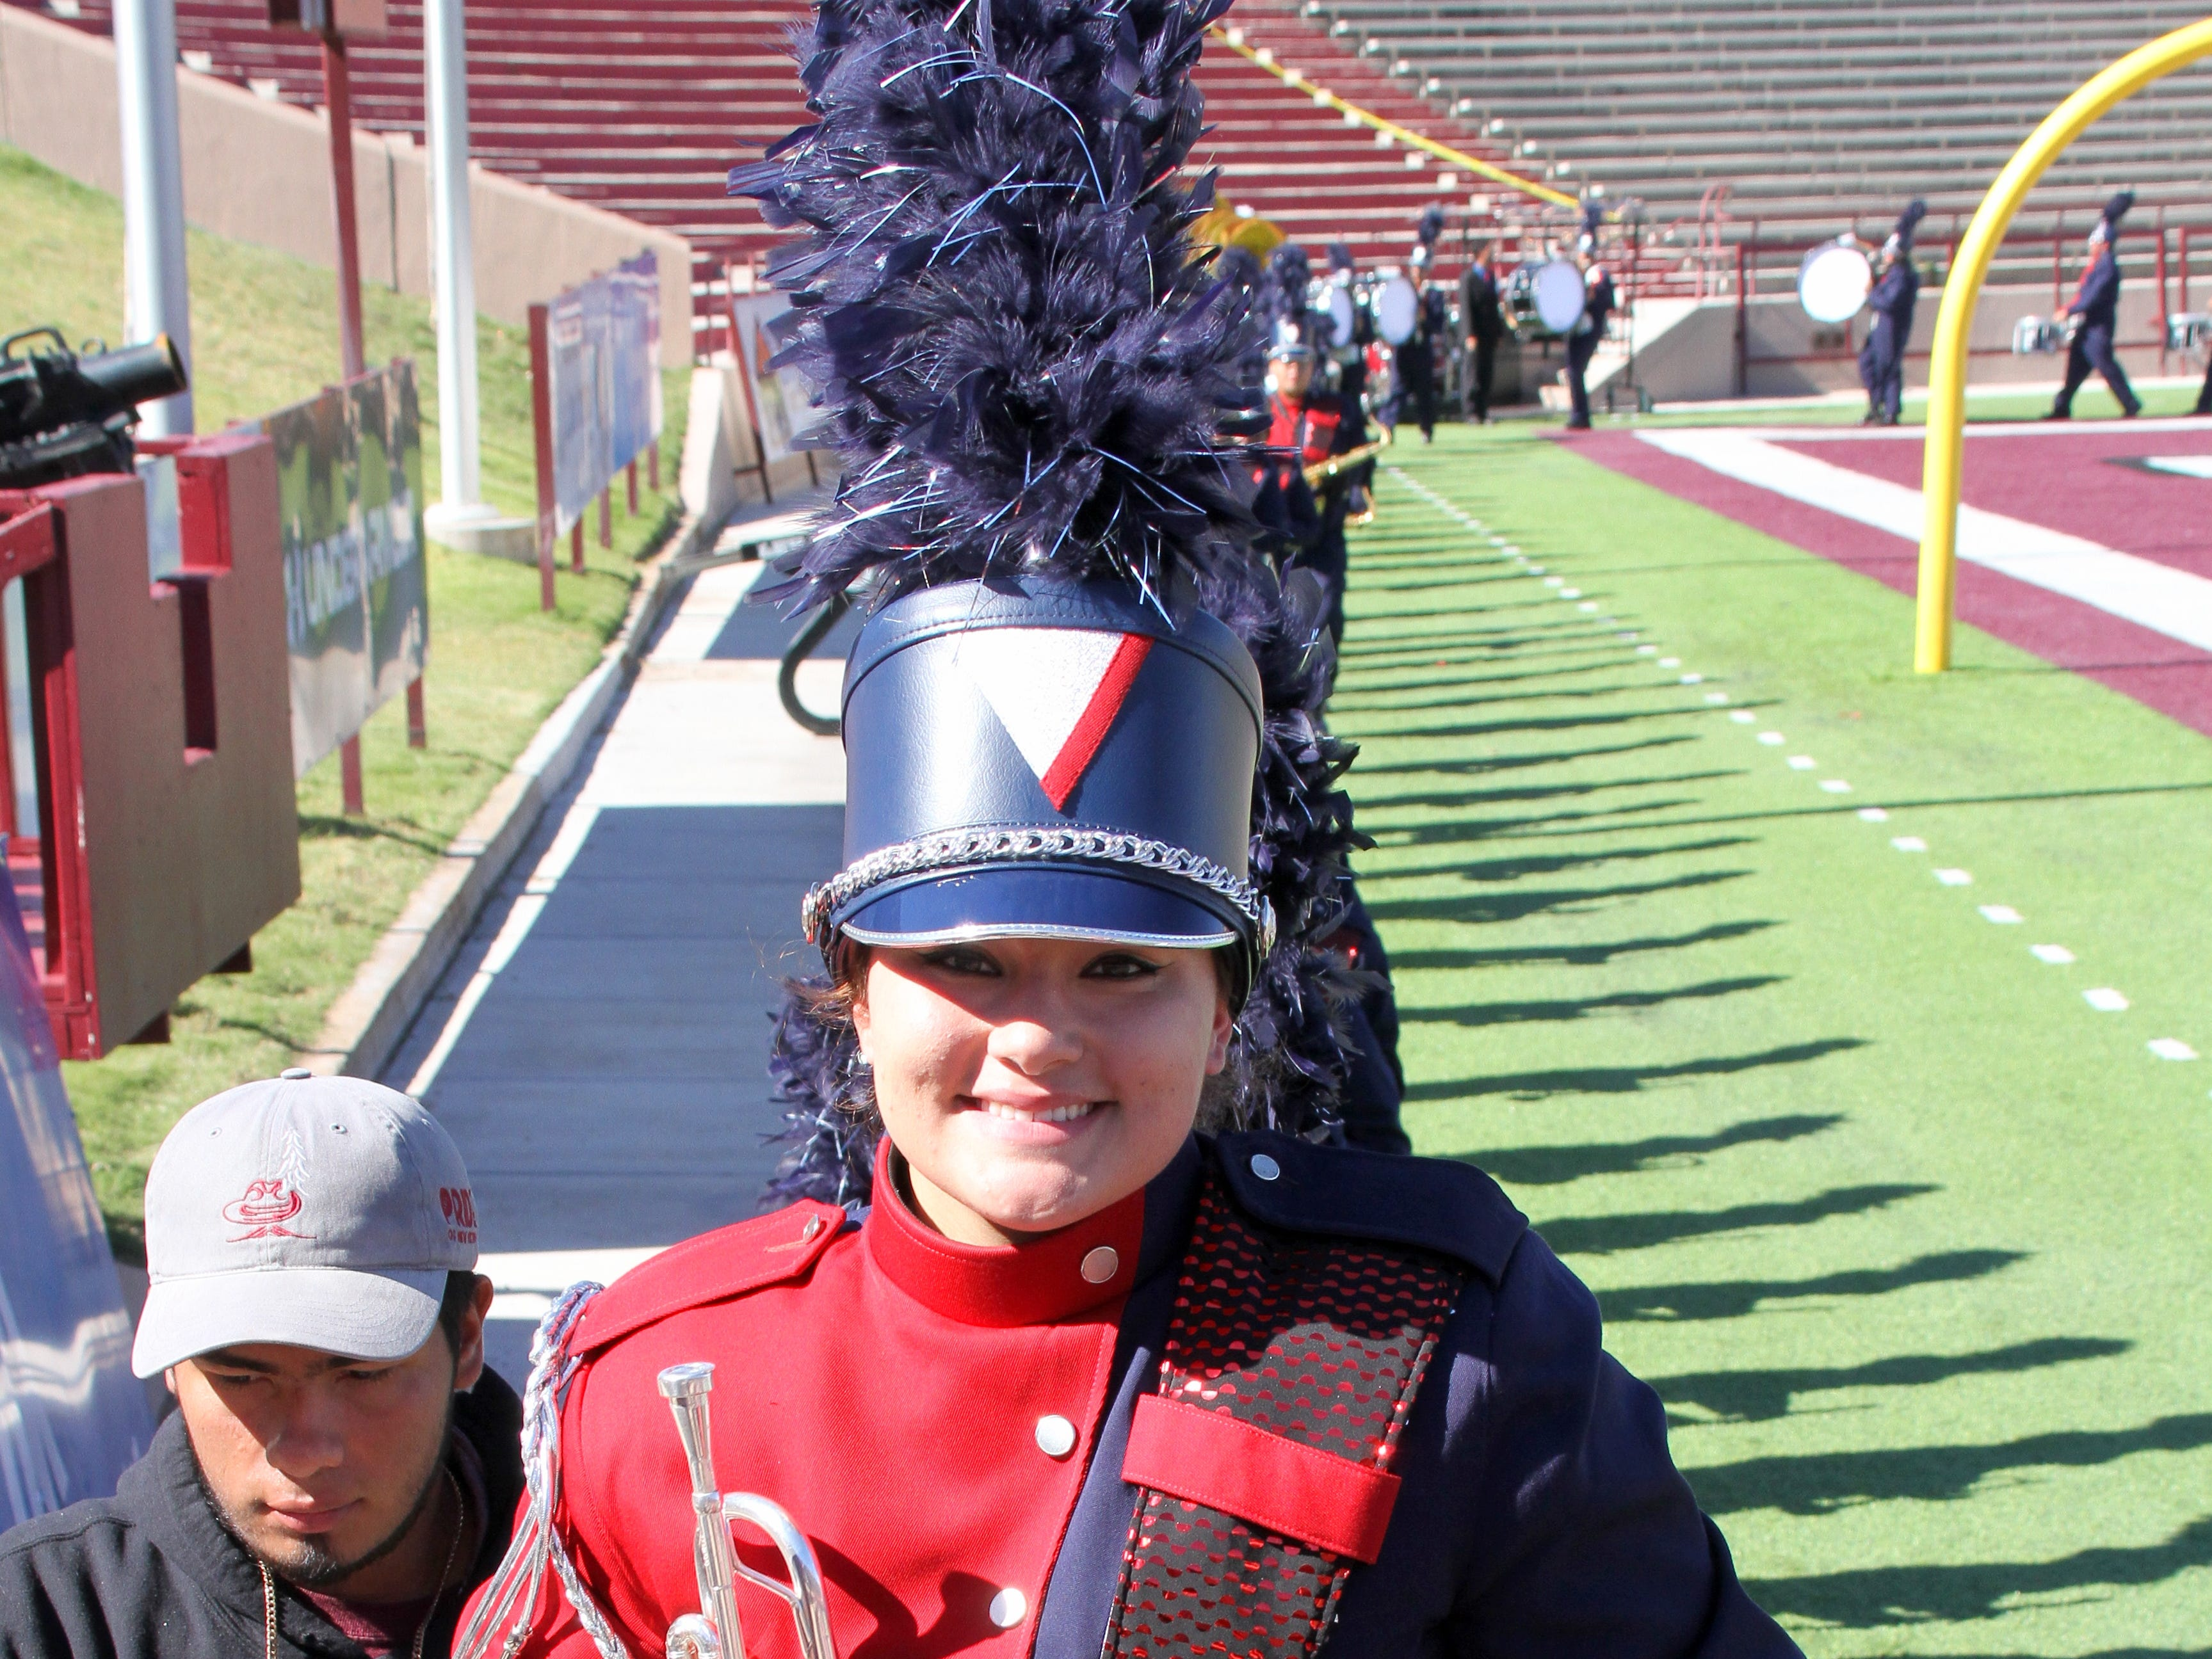 Kyleen Hensley is all smiles following the Deming High Wildcat Marching Band performance at the 41st annual Tournament of Bands at Aggie Memorial Stadium on the campus of New Mexico State University in Las Cruces, NM.